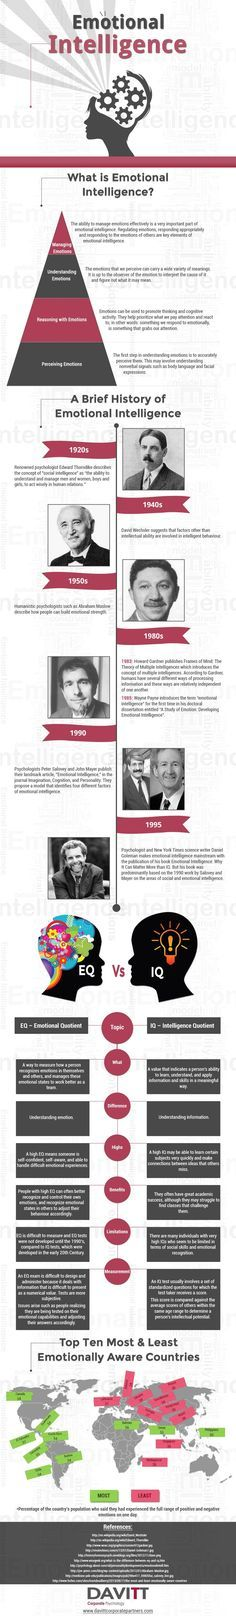 Emotional Intelligence #Infographic #Emotion #Intelligence Empowering Quotes